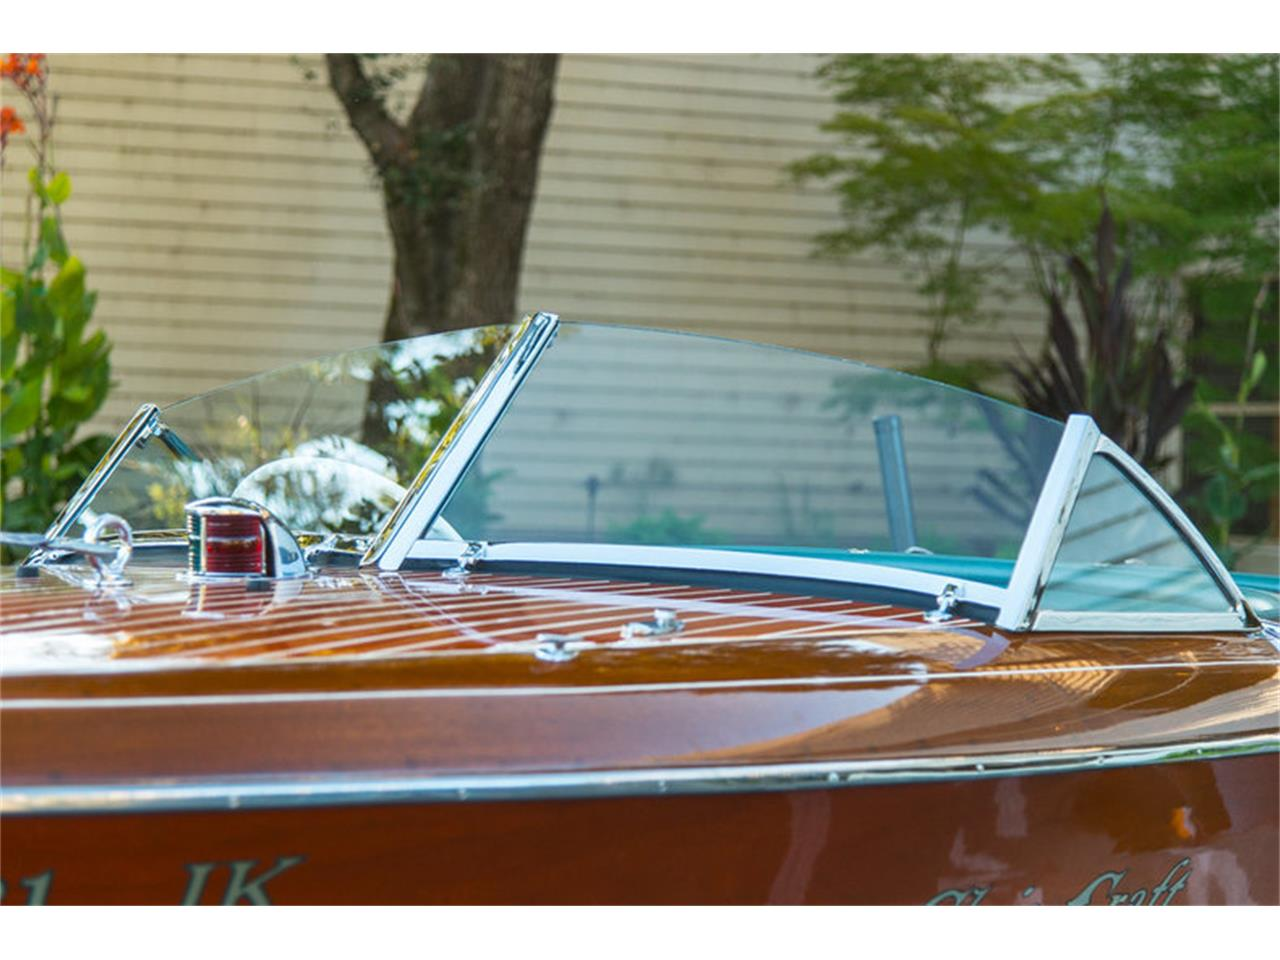 Large Picture of '41 Chris Craft Custom Runabout located in Scotts Valley California Auction Vehicle - GQA5